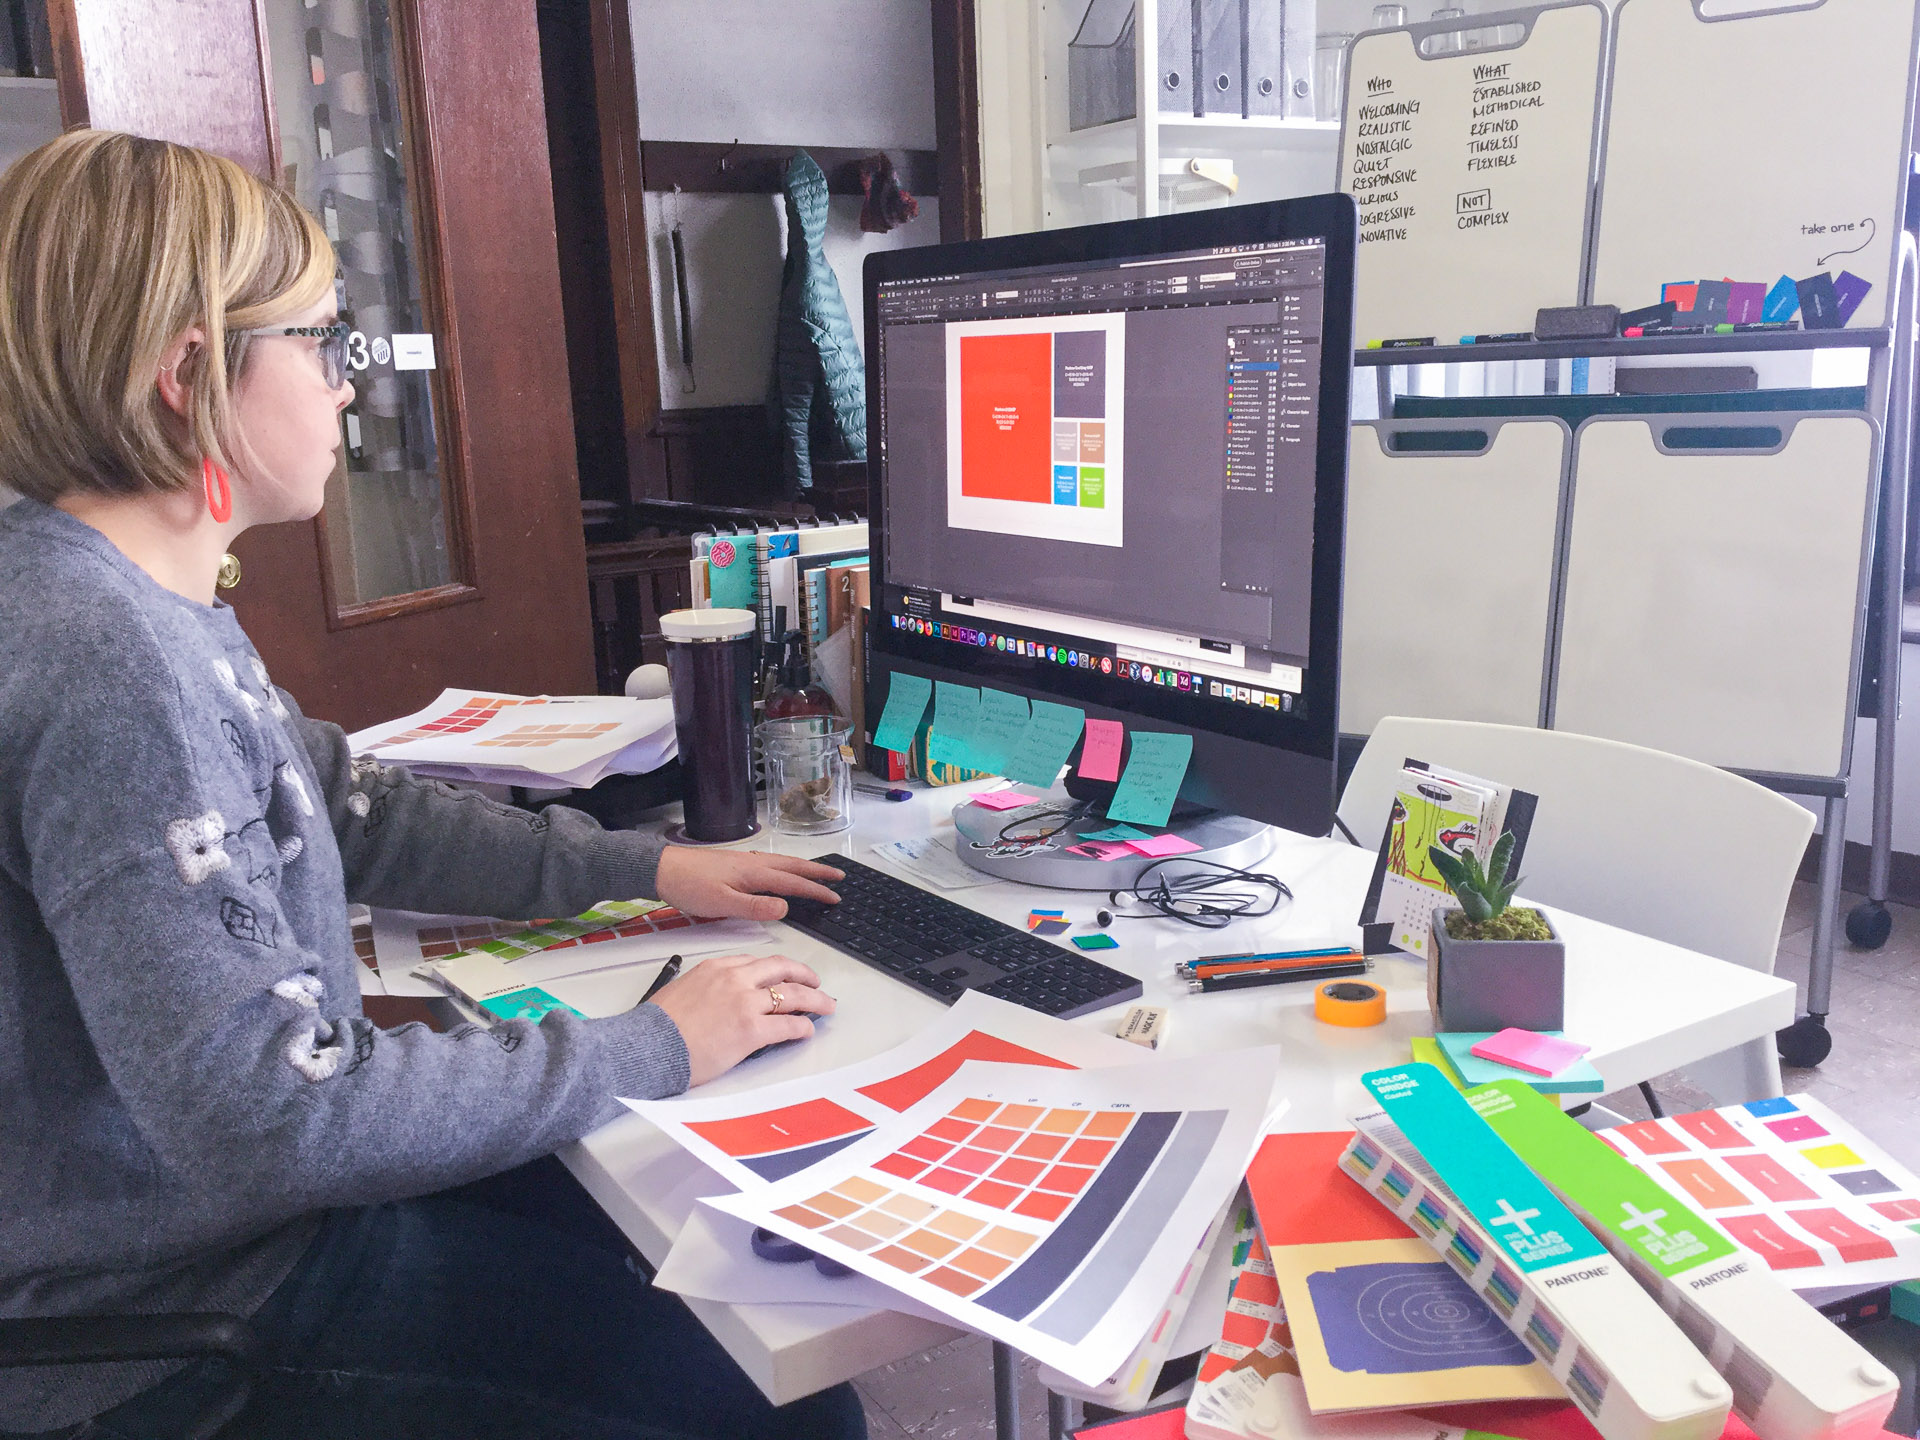 Woman working on the computer looking at the CLLA color scheme on the screen with Pantone color swatch books on her desk